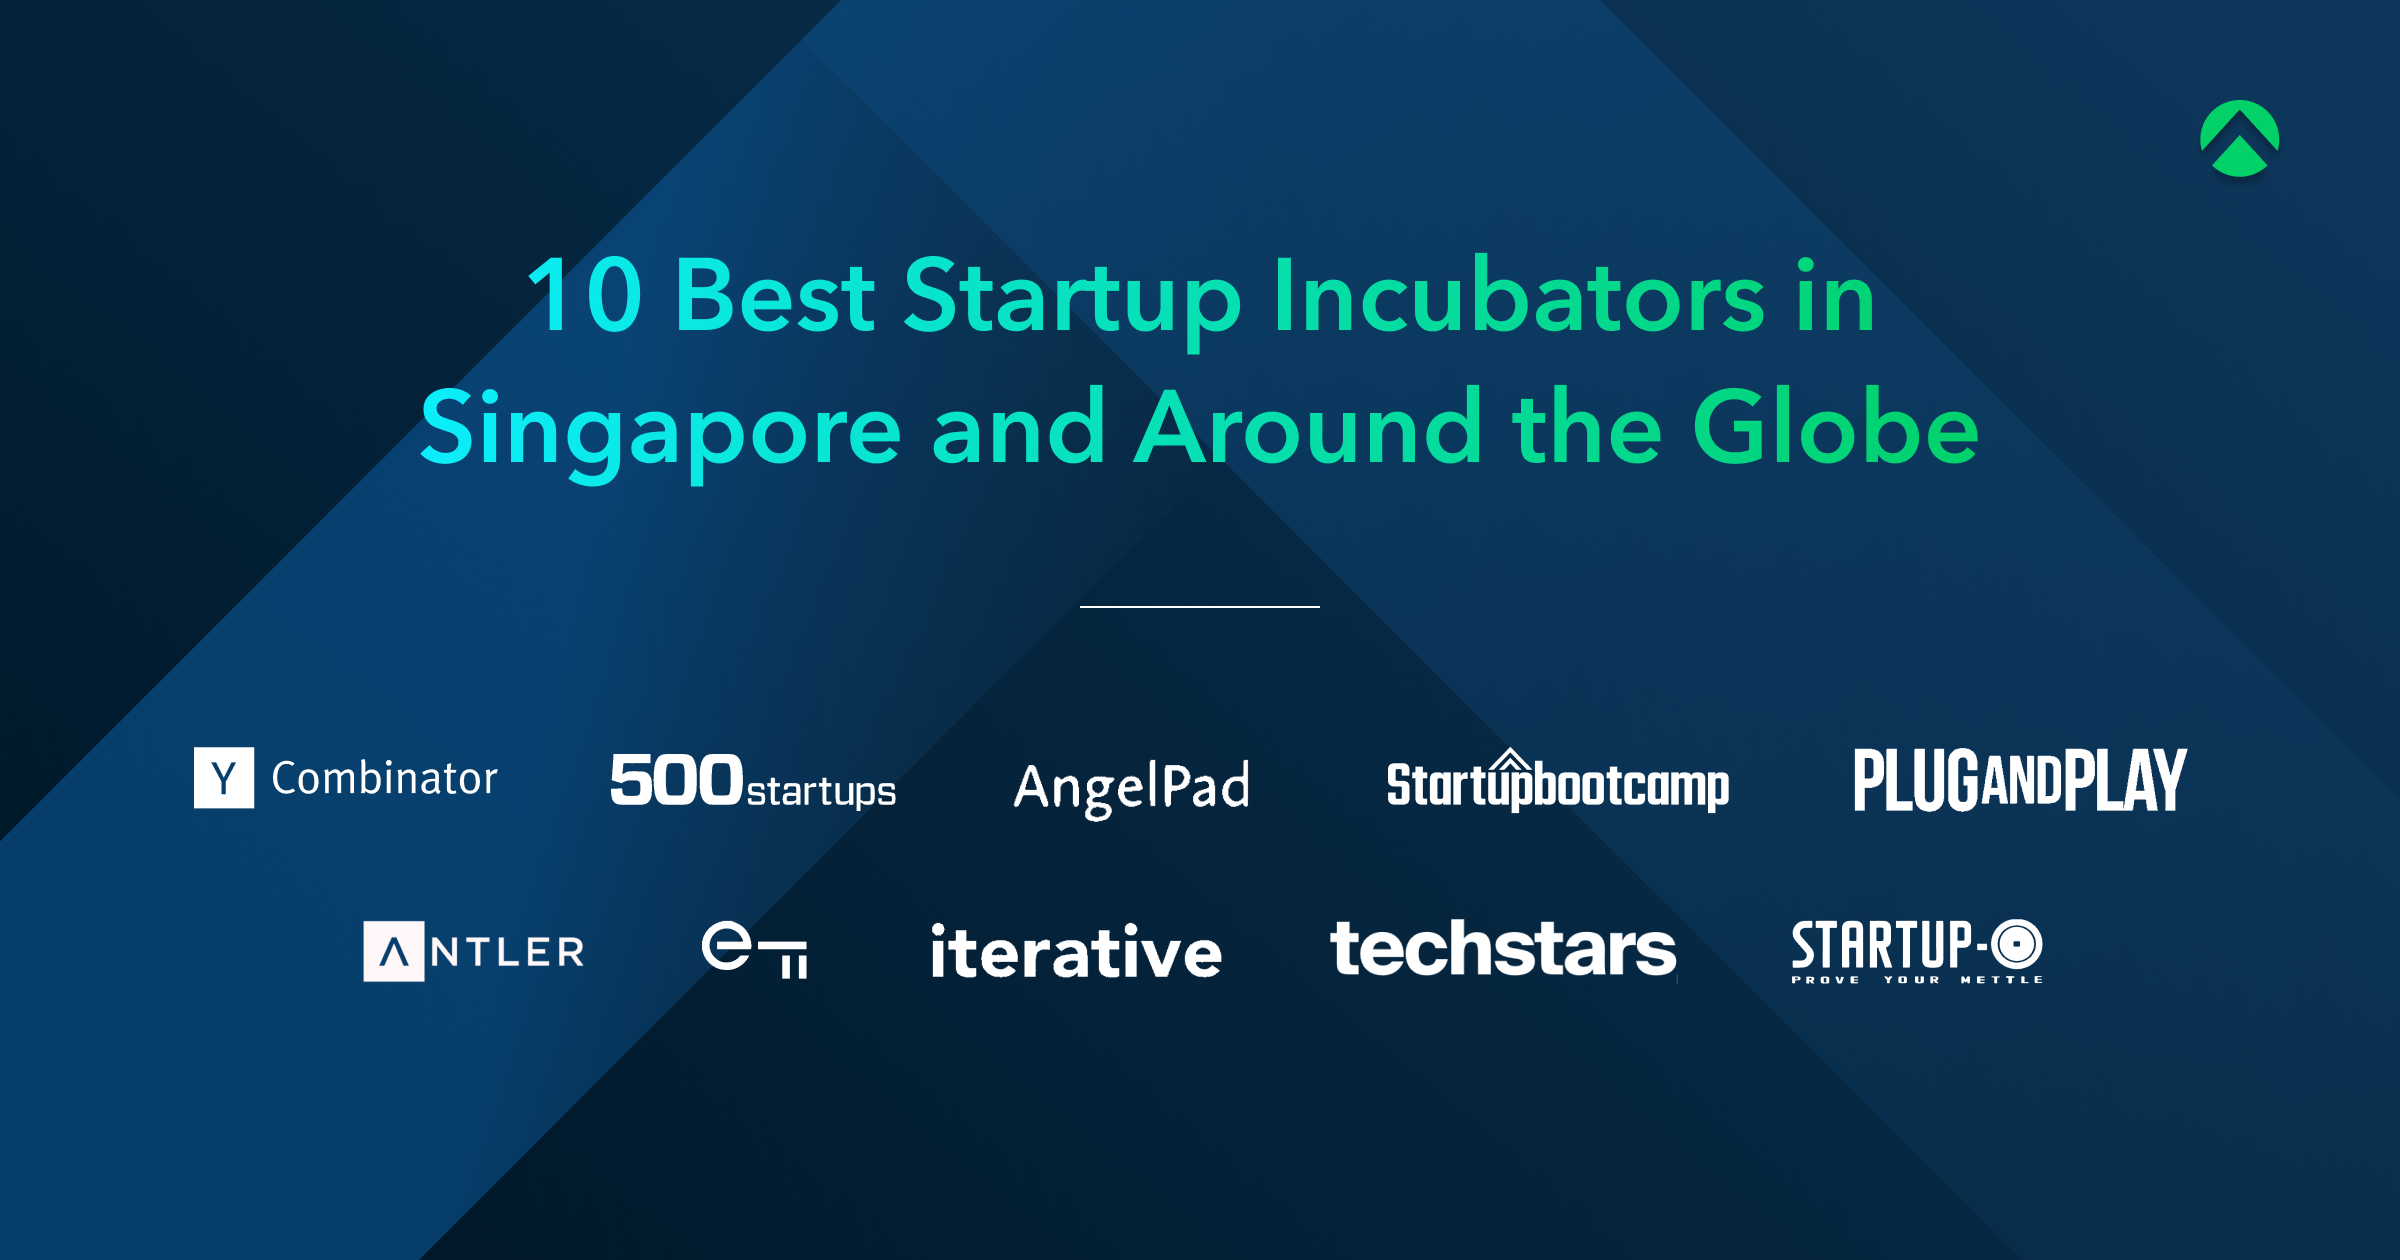 Comparing 10 Best Startup Incubators in Singapore and Around the Globe